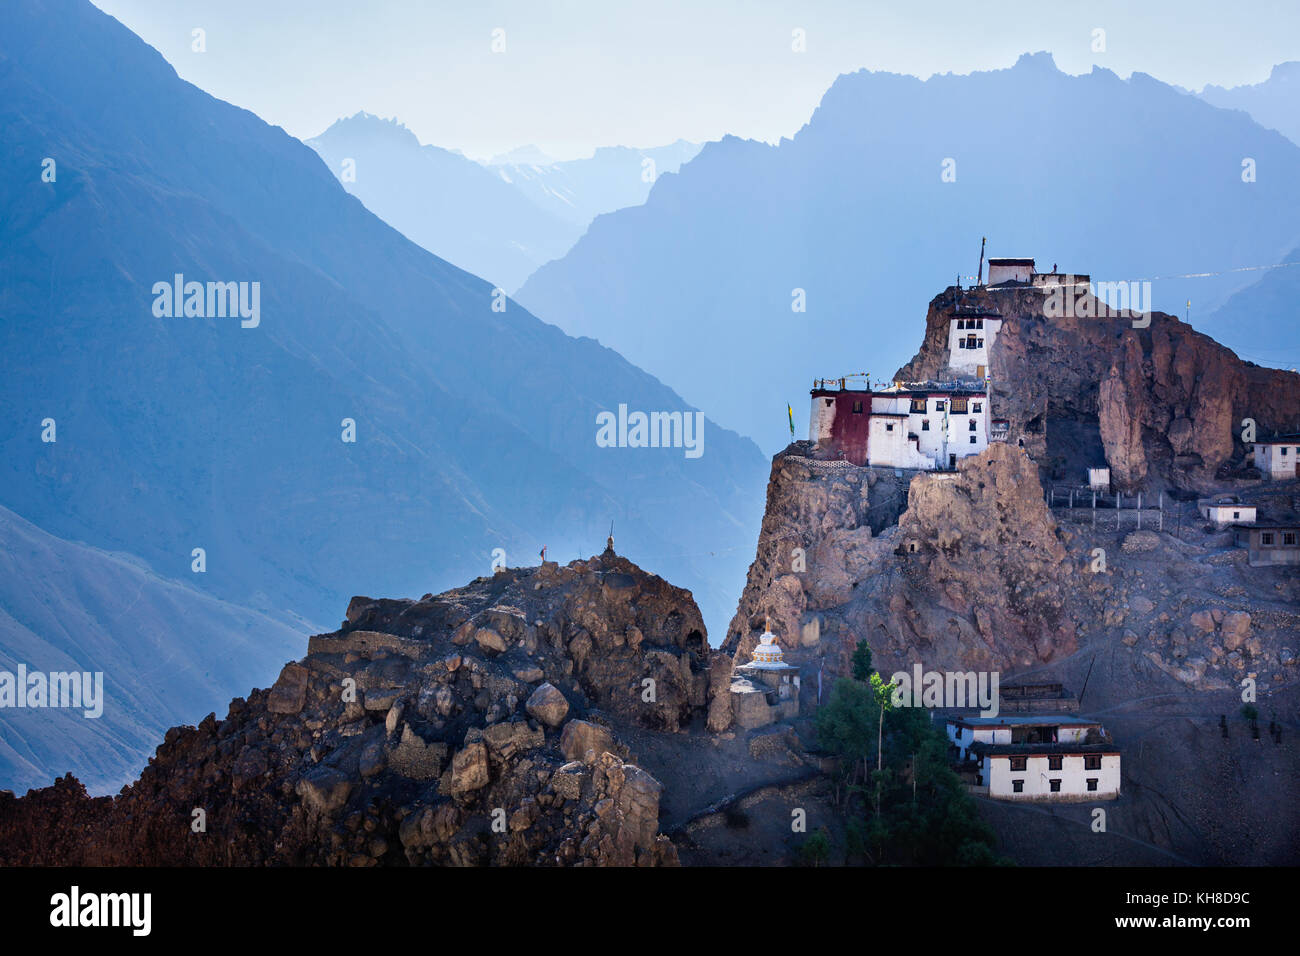 Dhankar gompa. Spiti valley, Himachal Pradesh, India - Stock Image